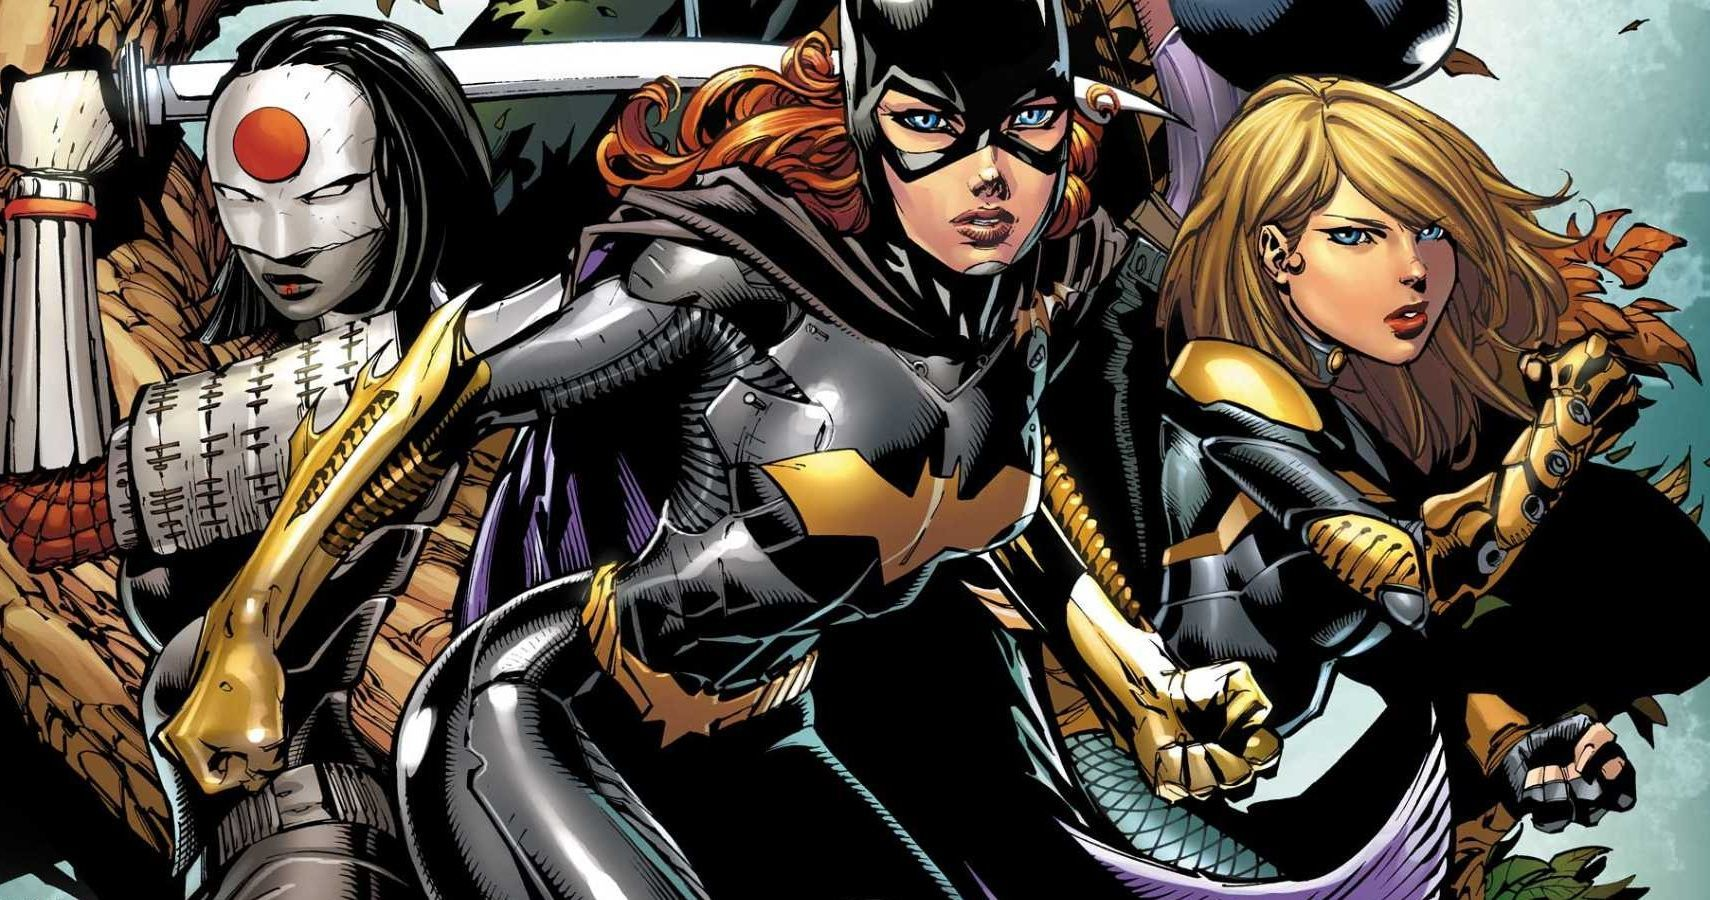 DC Comics: 10 Best Birds Of Prey Storylines Ranked | CBR  #comics #comicbooks #art #drawing #illustration #cartoon #marvel #artist #anime #sketch #comicart #manga #comicbook #webcomic #digitalart #draw #comicstrip #marvelcomics #artwork #dccomics #dc #webcomics